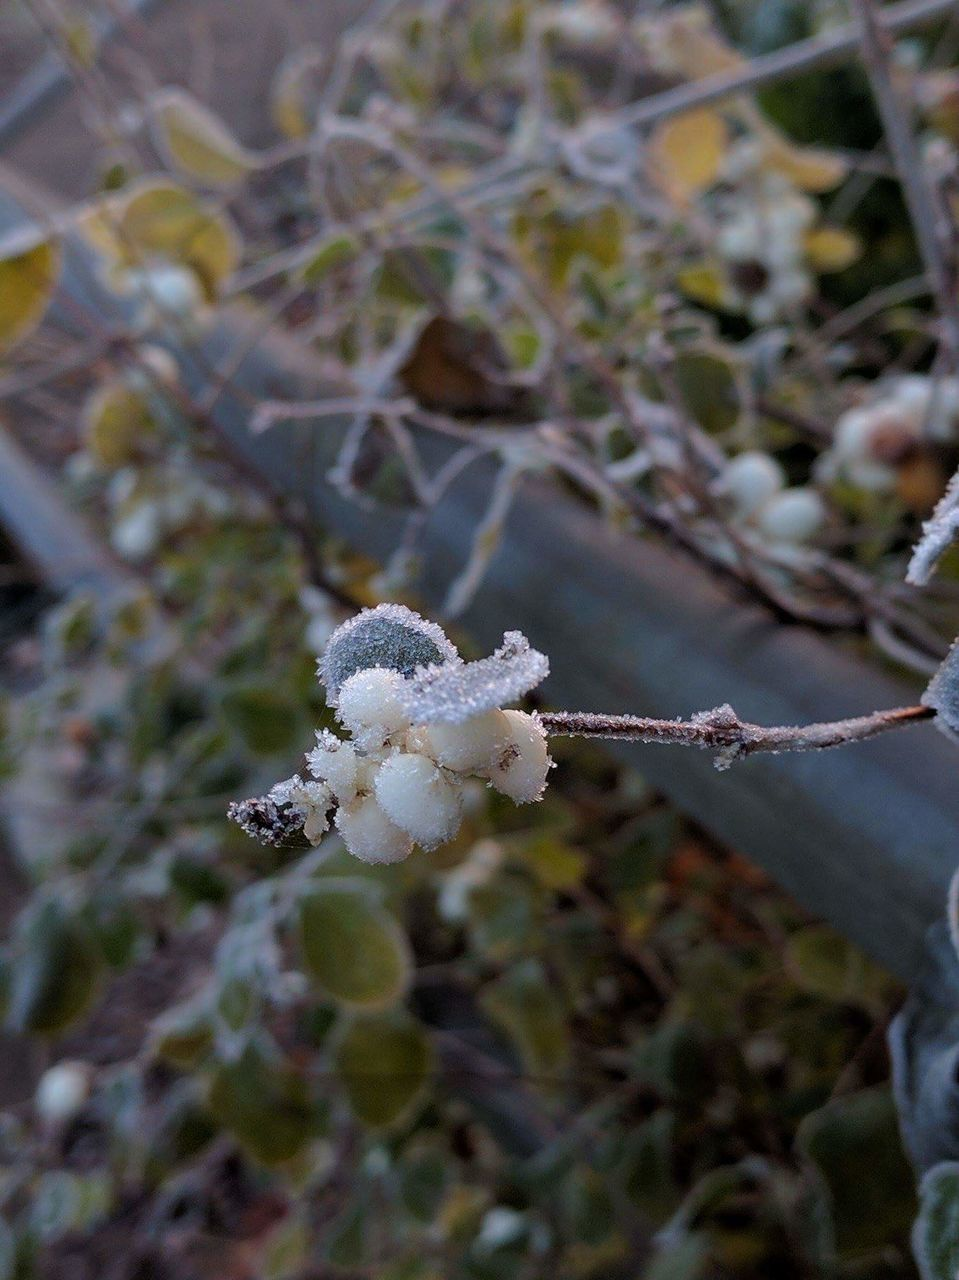 white color, nature, growth, beauty in nature, day, plant, cold temperature, close-up, outdoors, flower, no people, winter, fragility, snow, freshness